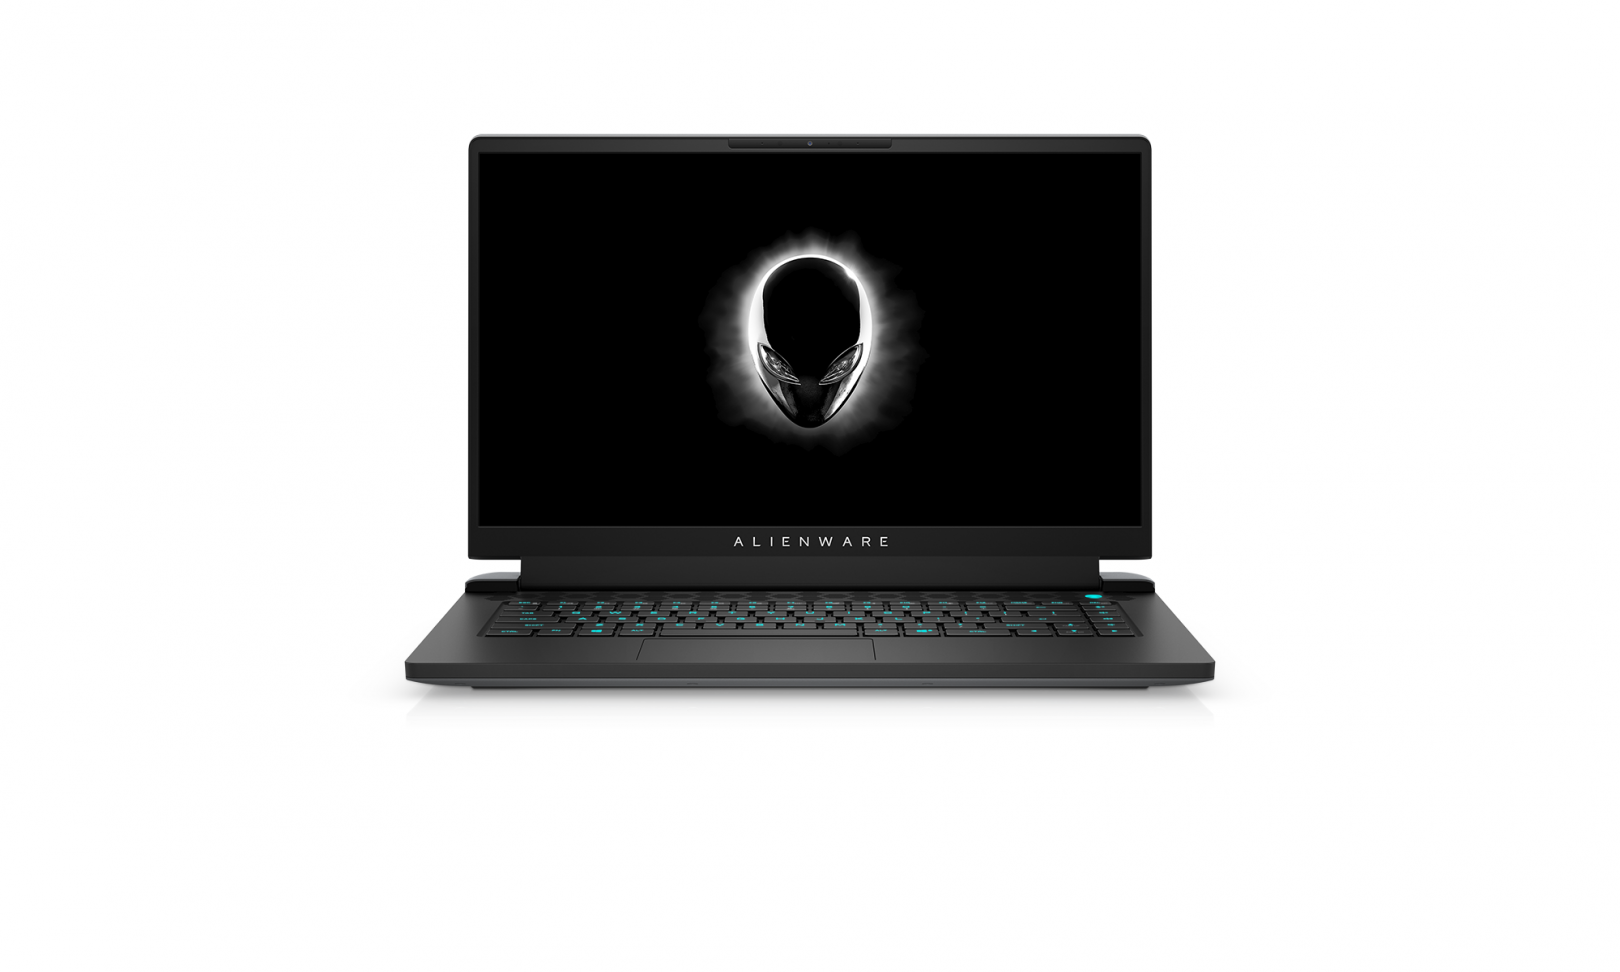 Alienware m15 Ryzen Edition R5: What you need to know about the new AMD laptop